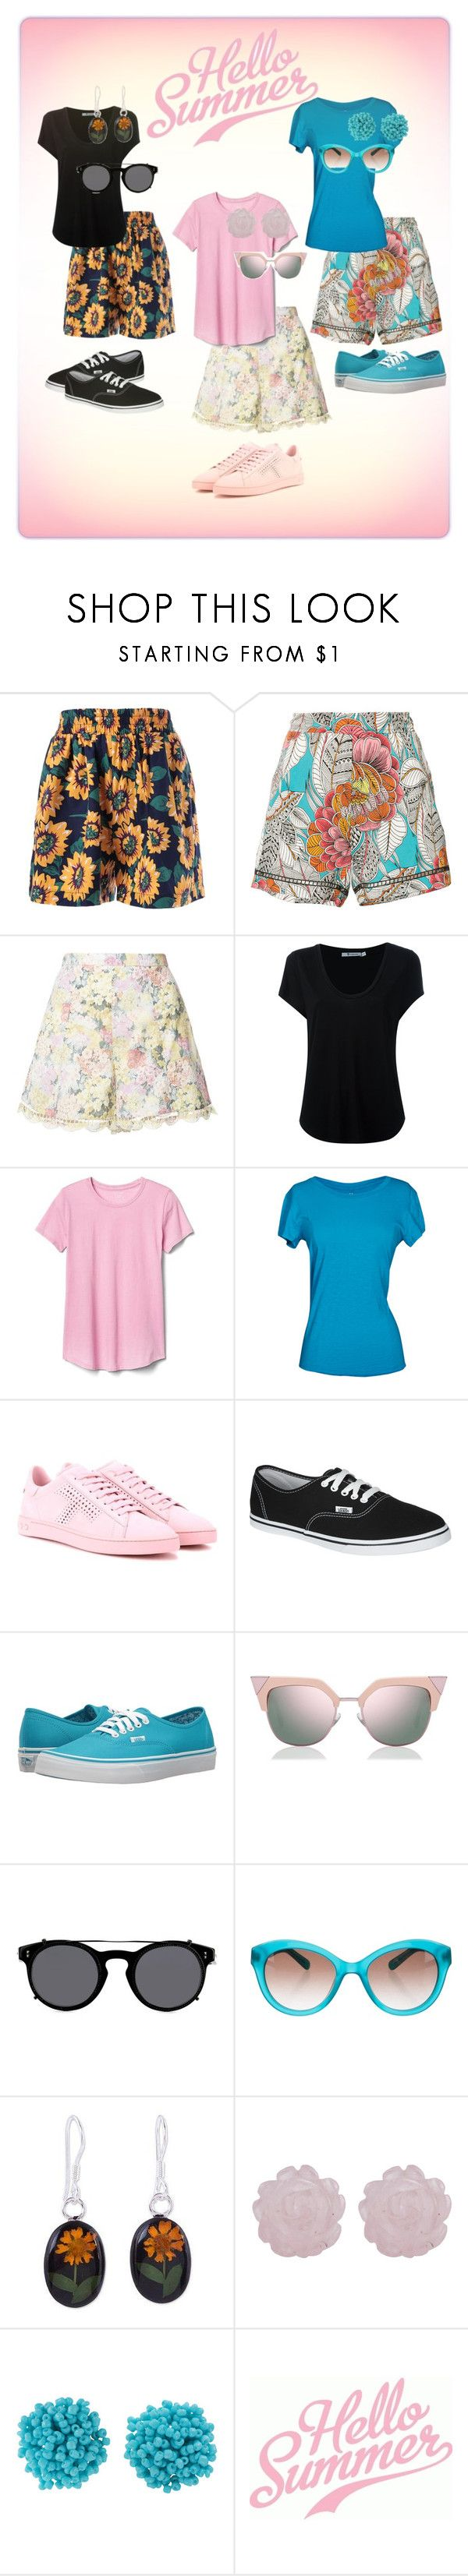 """""""Hello Summer"""" by theitalianparisian ❤ liked on Polyvore featuring Trina Turk, Zimmermann, Alexander Wang, Gap, Velvet by Graham & Spencer, Tod's, Vans, Fendi, Valentino and Kate Spade"""